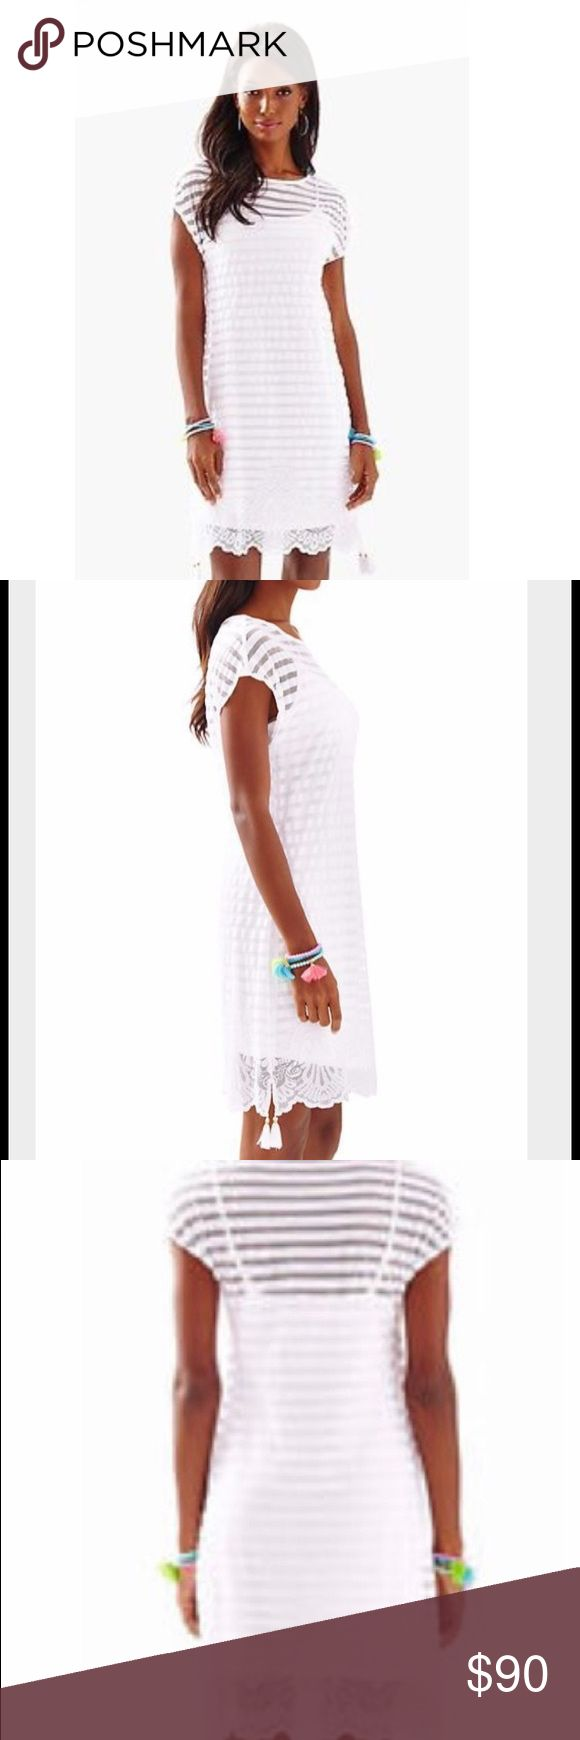 NWT Lilly Pulitzer Adria Turtle Bay Tunic Dress NWT Lilly Pulitzer Adria Tunic Dress. White mesh/lace-style dress with stripes. Gorgeous detailing at bottom. Tassels hang on both sides. White spaghetti strap dress acts as lining. NWT/never worn and no defects. Lilly Pulitzer Dresses Mini